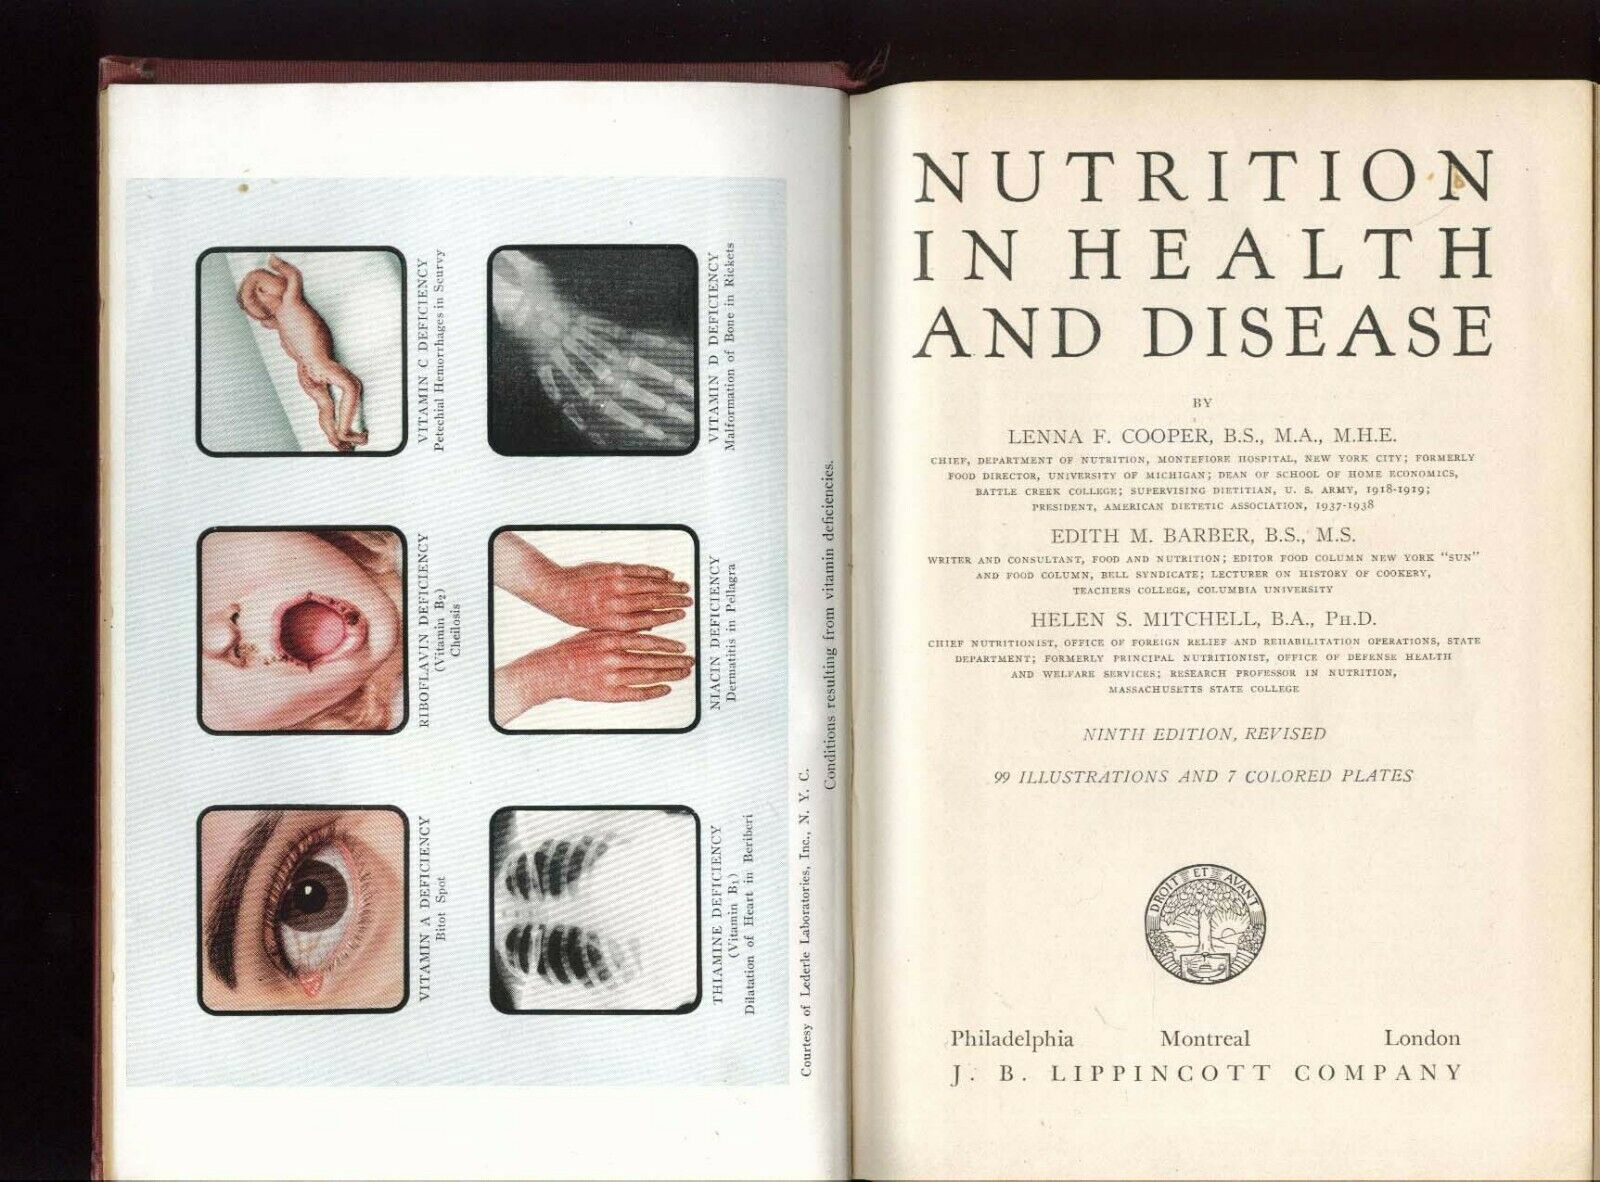 Nutrition In Health And Disease - Lenna Coope, Edith Barber (Hardcover, 1943)